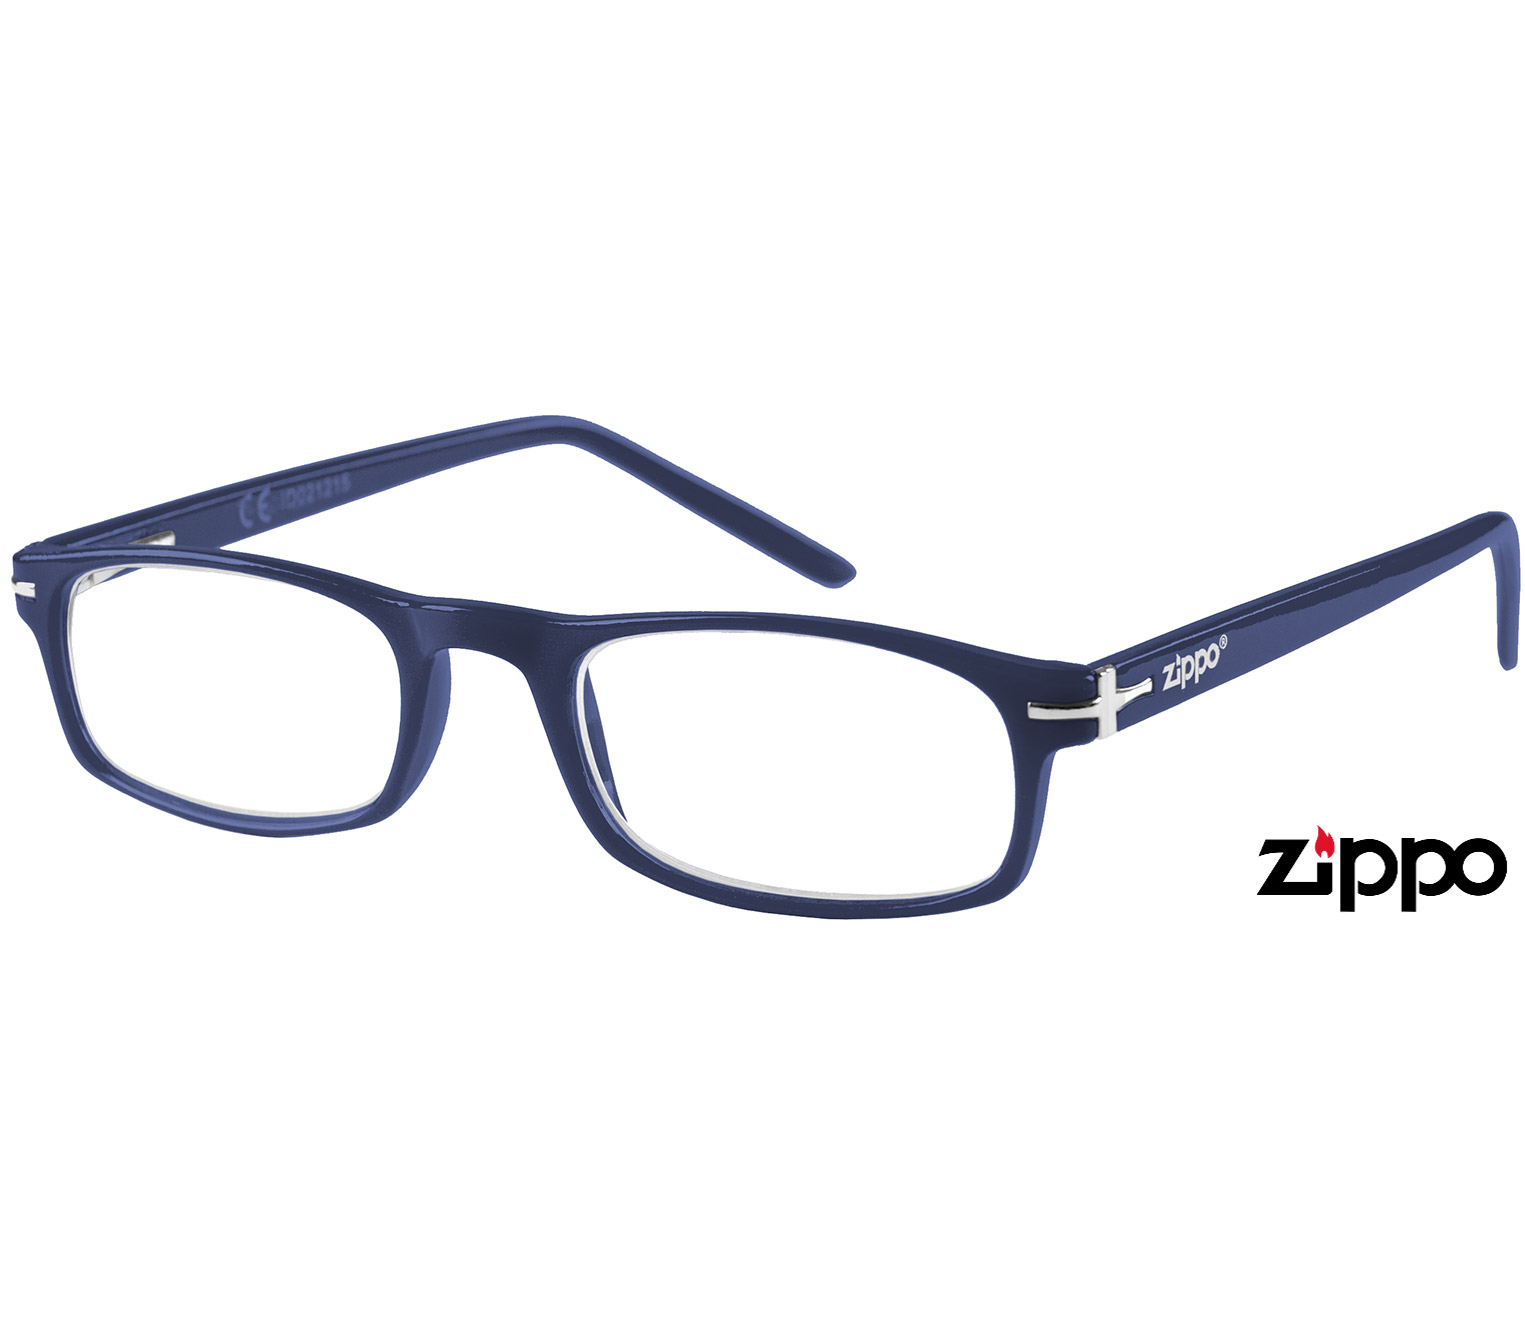 Main Image (Angle) - London (Blue) Classic Reading Glasses